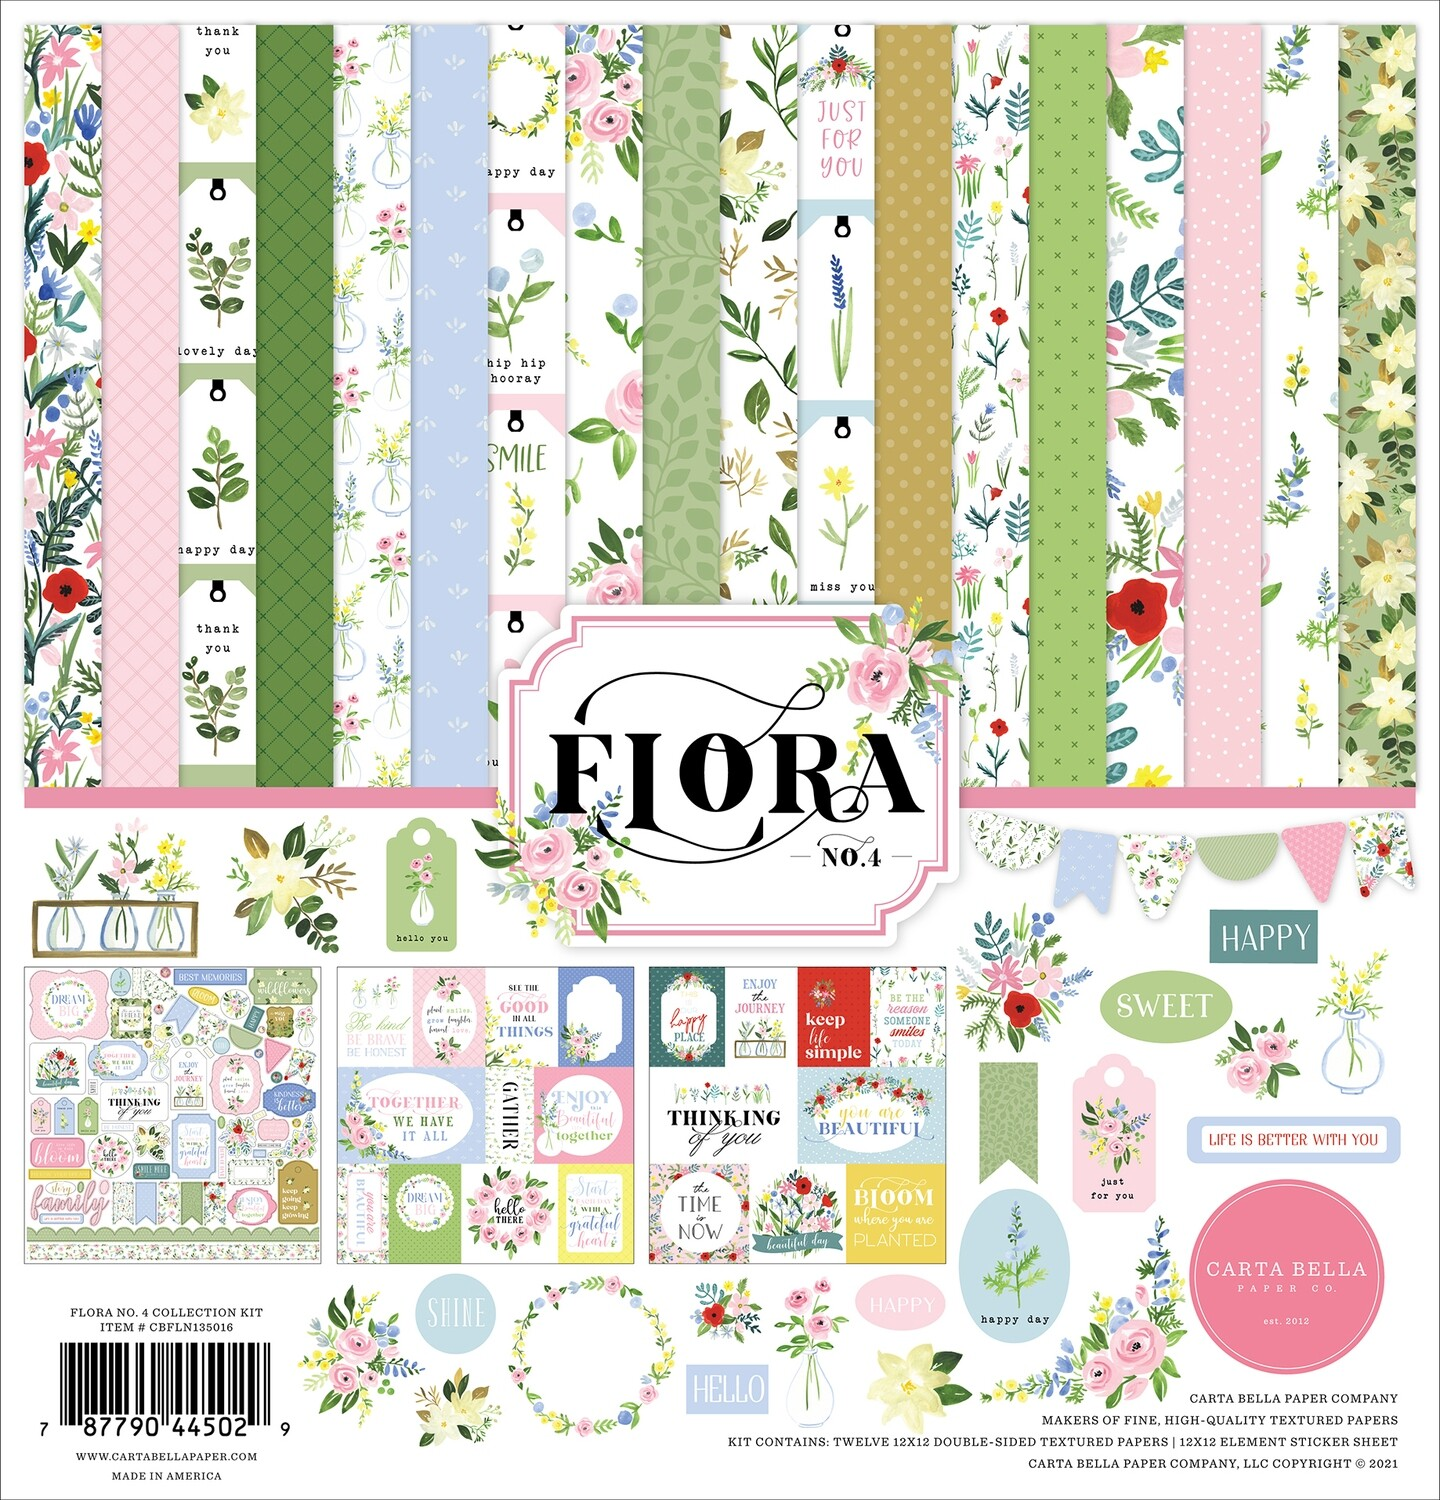 Flora #4 By Carta Bella 12x12 Collection Pack